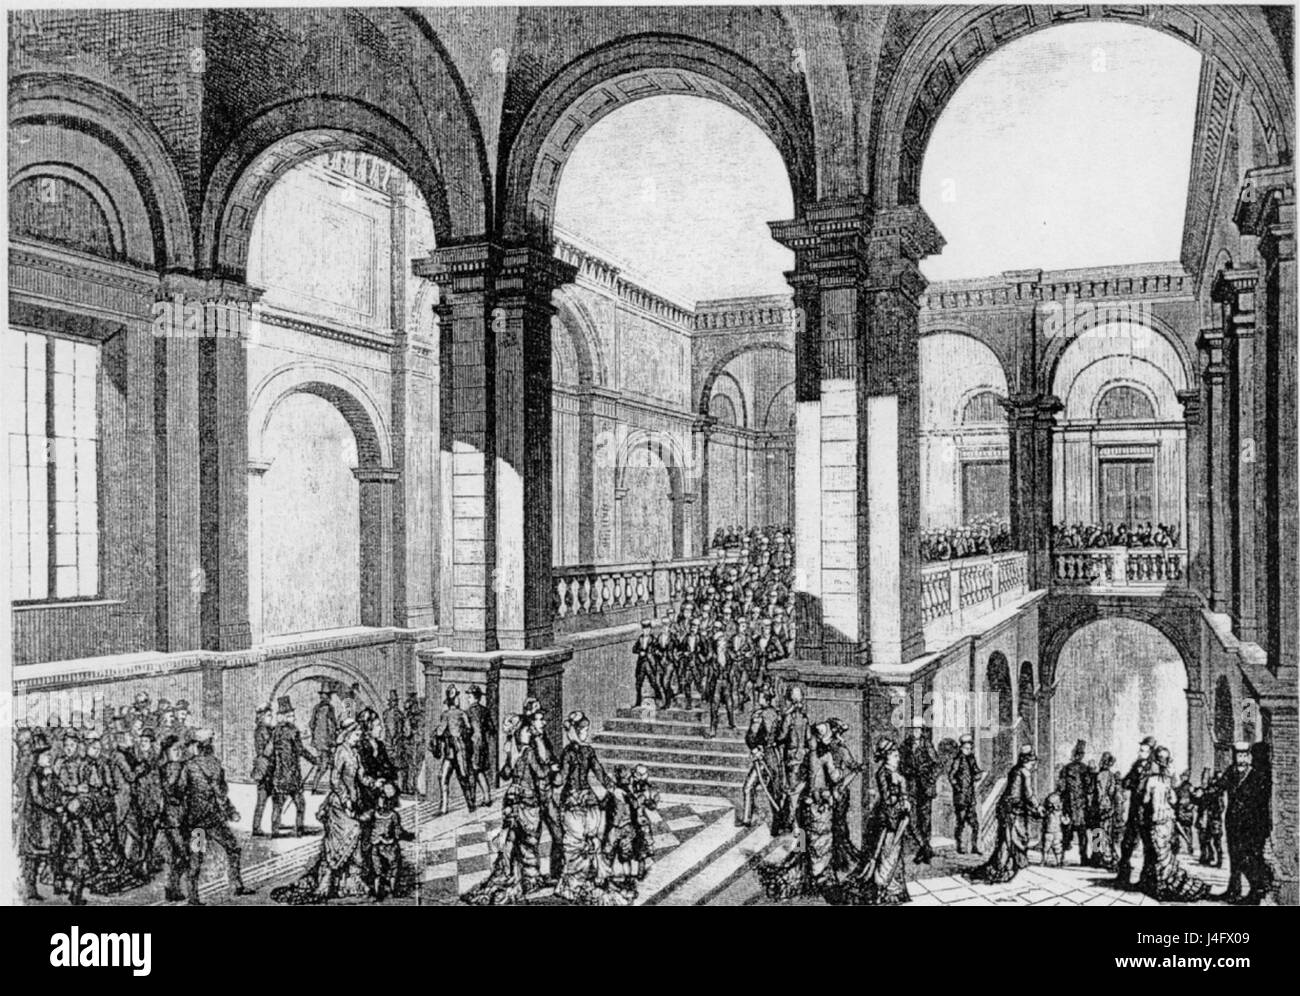 Student singers march down the stairs in Carolina Rediviva 1877 Stock Photo